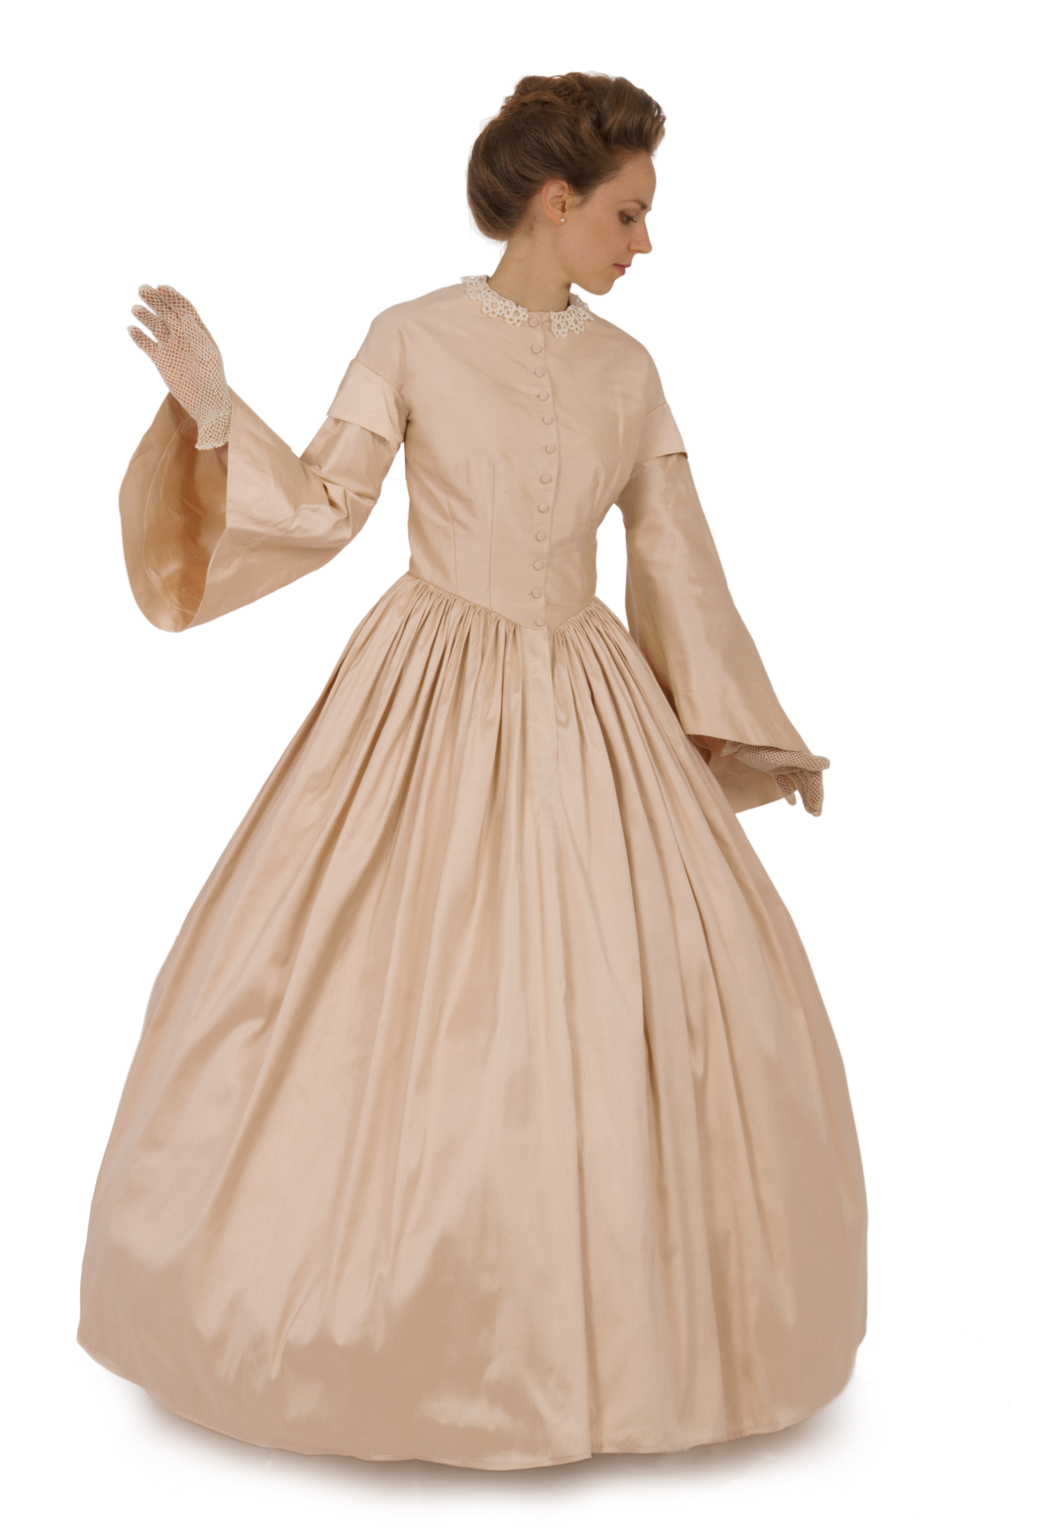 Civil War Gowns from Recollections (Page 1 of 3)